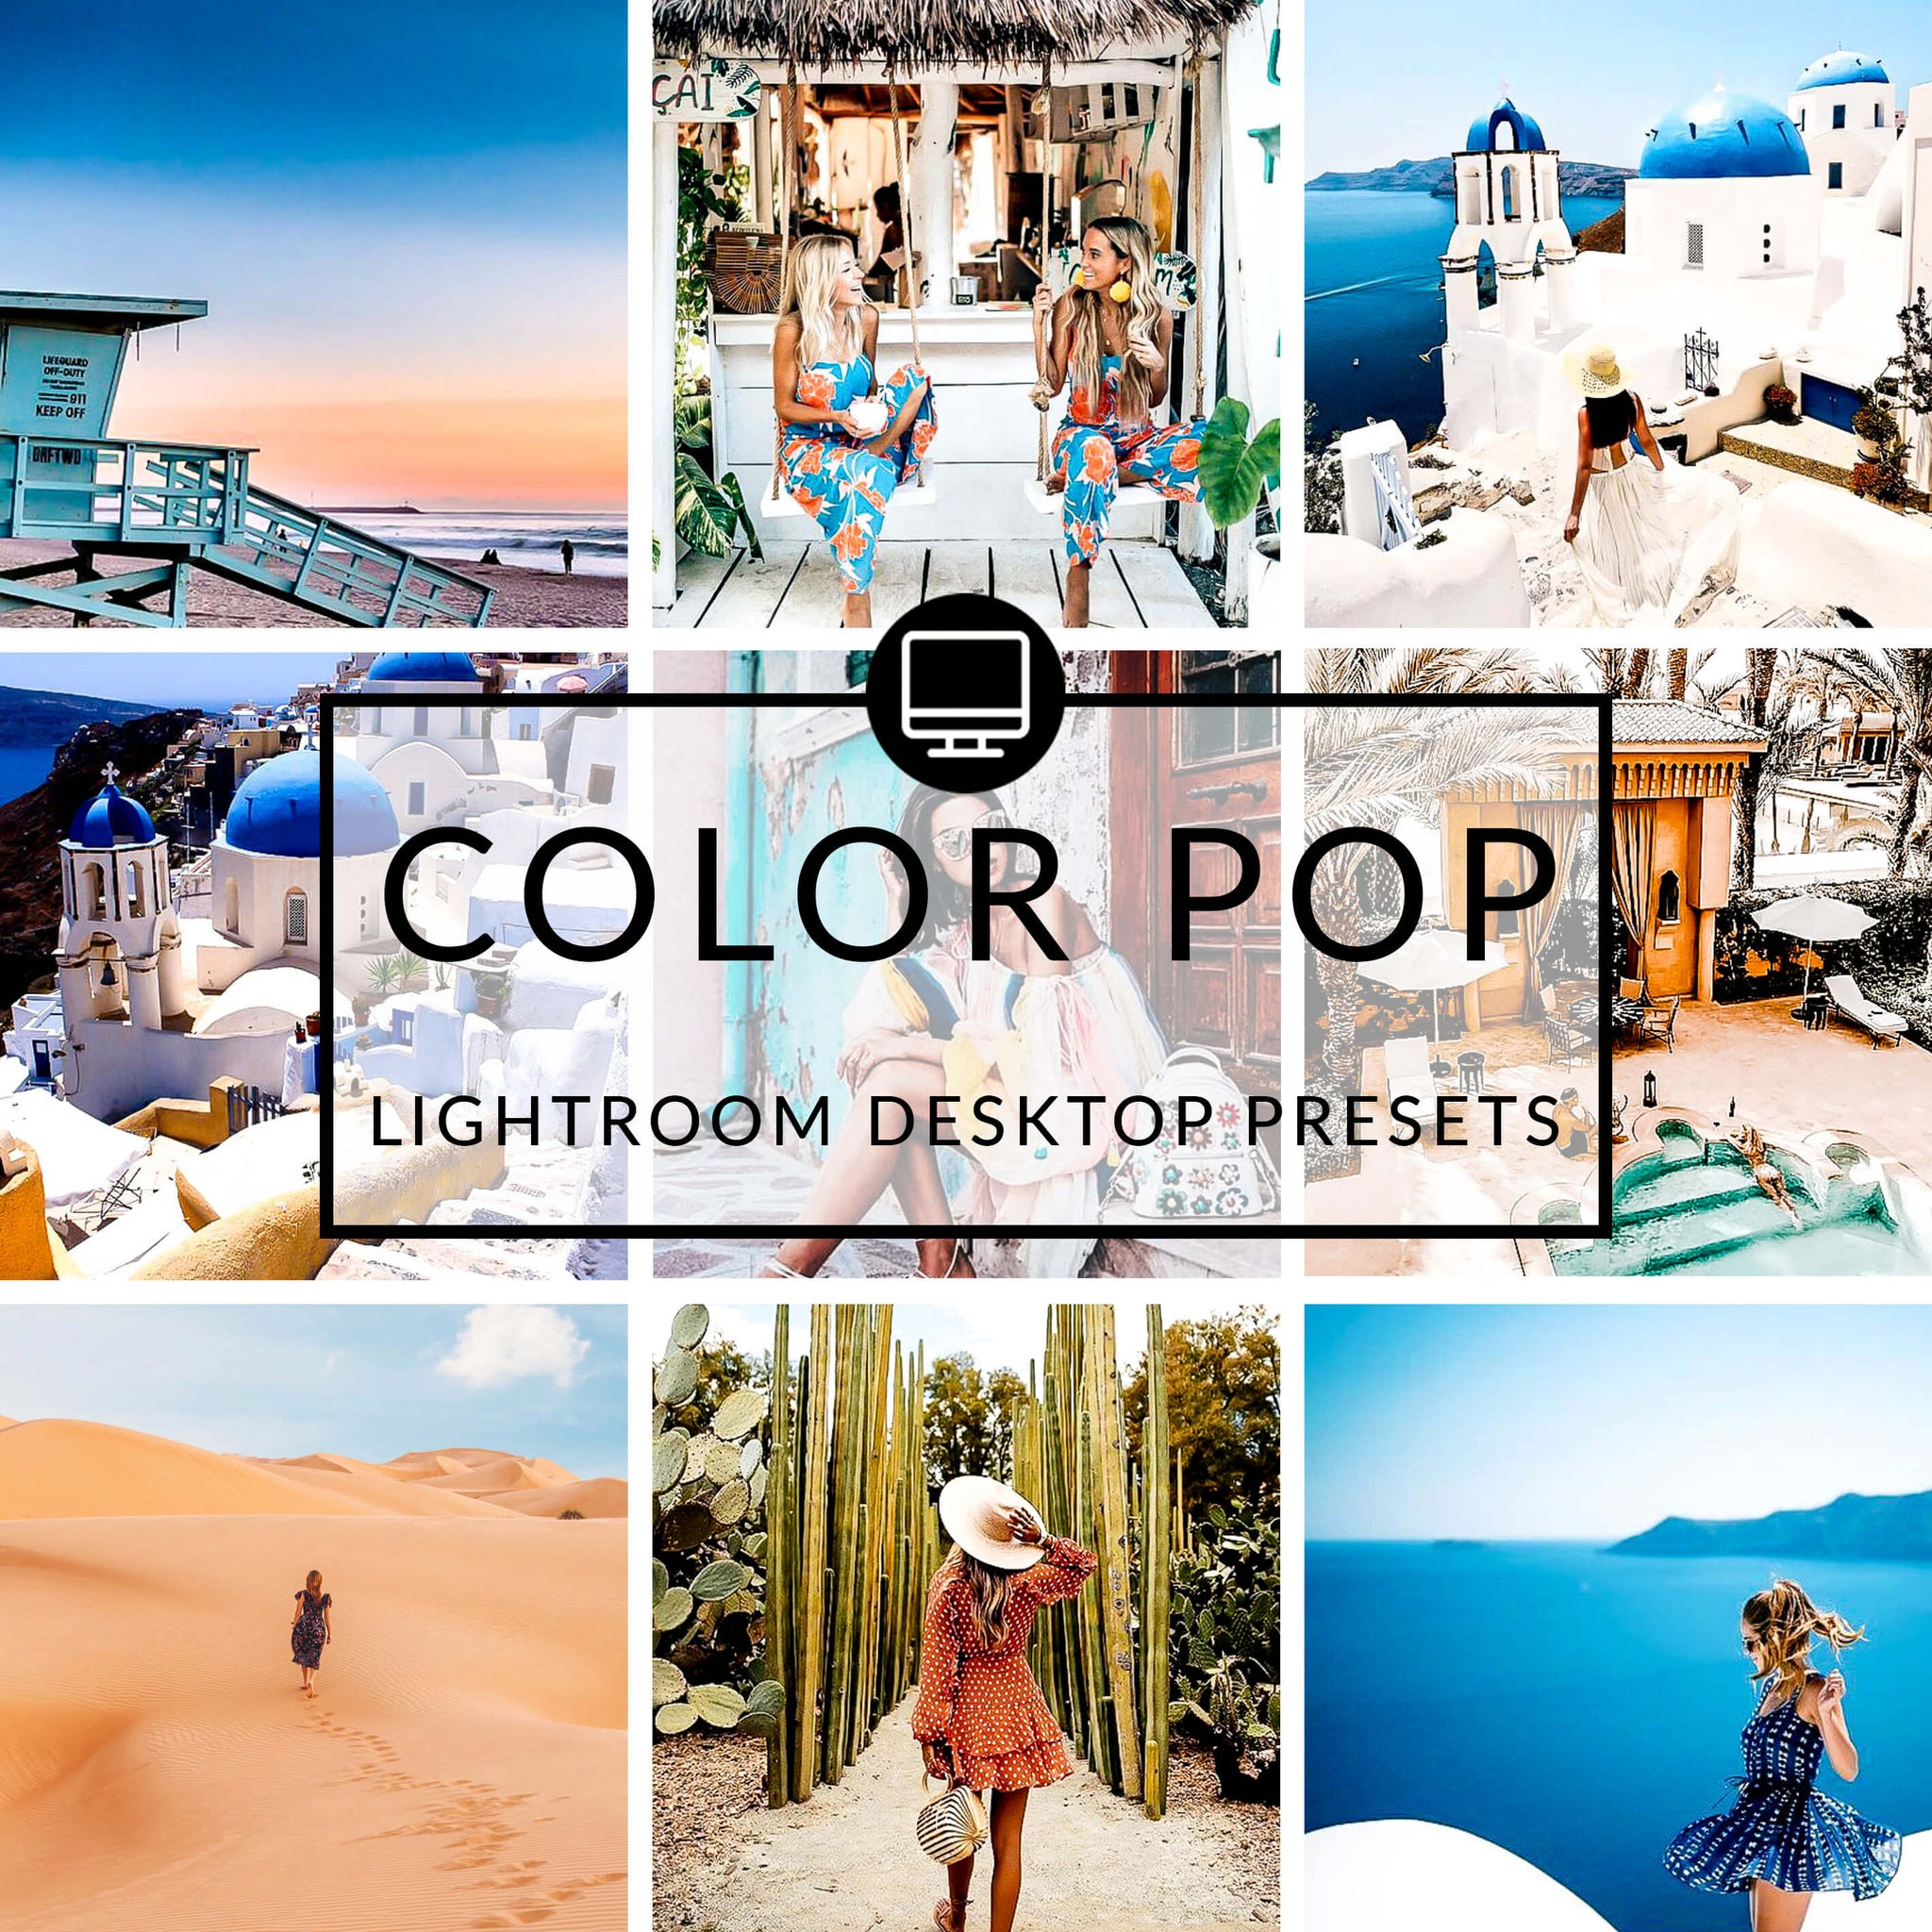 Color Pop Lightroom Desktop Preset